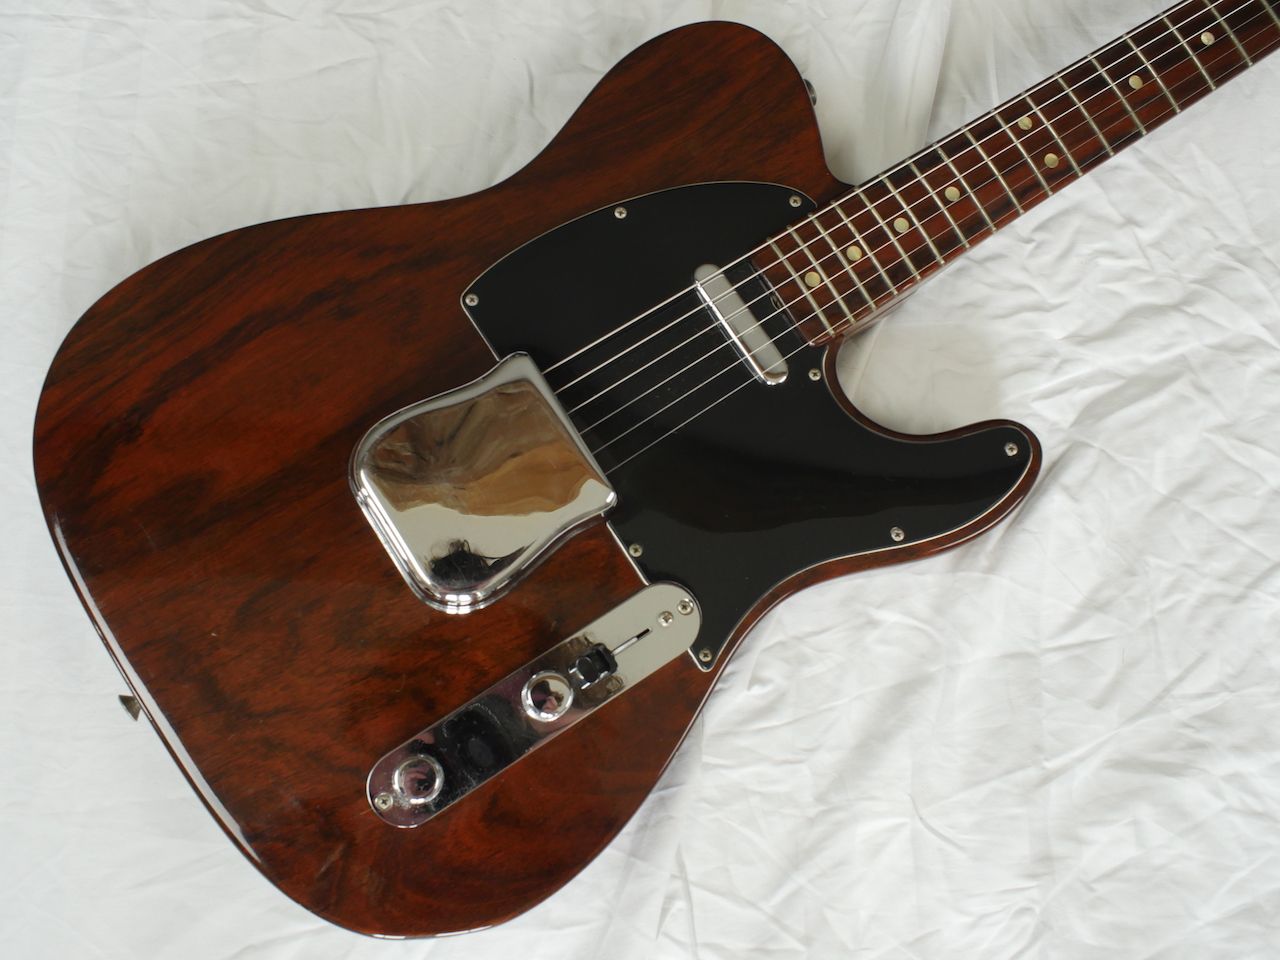 fender rosewood telecaster 1969 rosewood guitar for sale atoyboy guitars. Black Bedroom Furniture Sets. Home Design Ideas